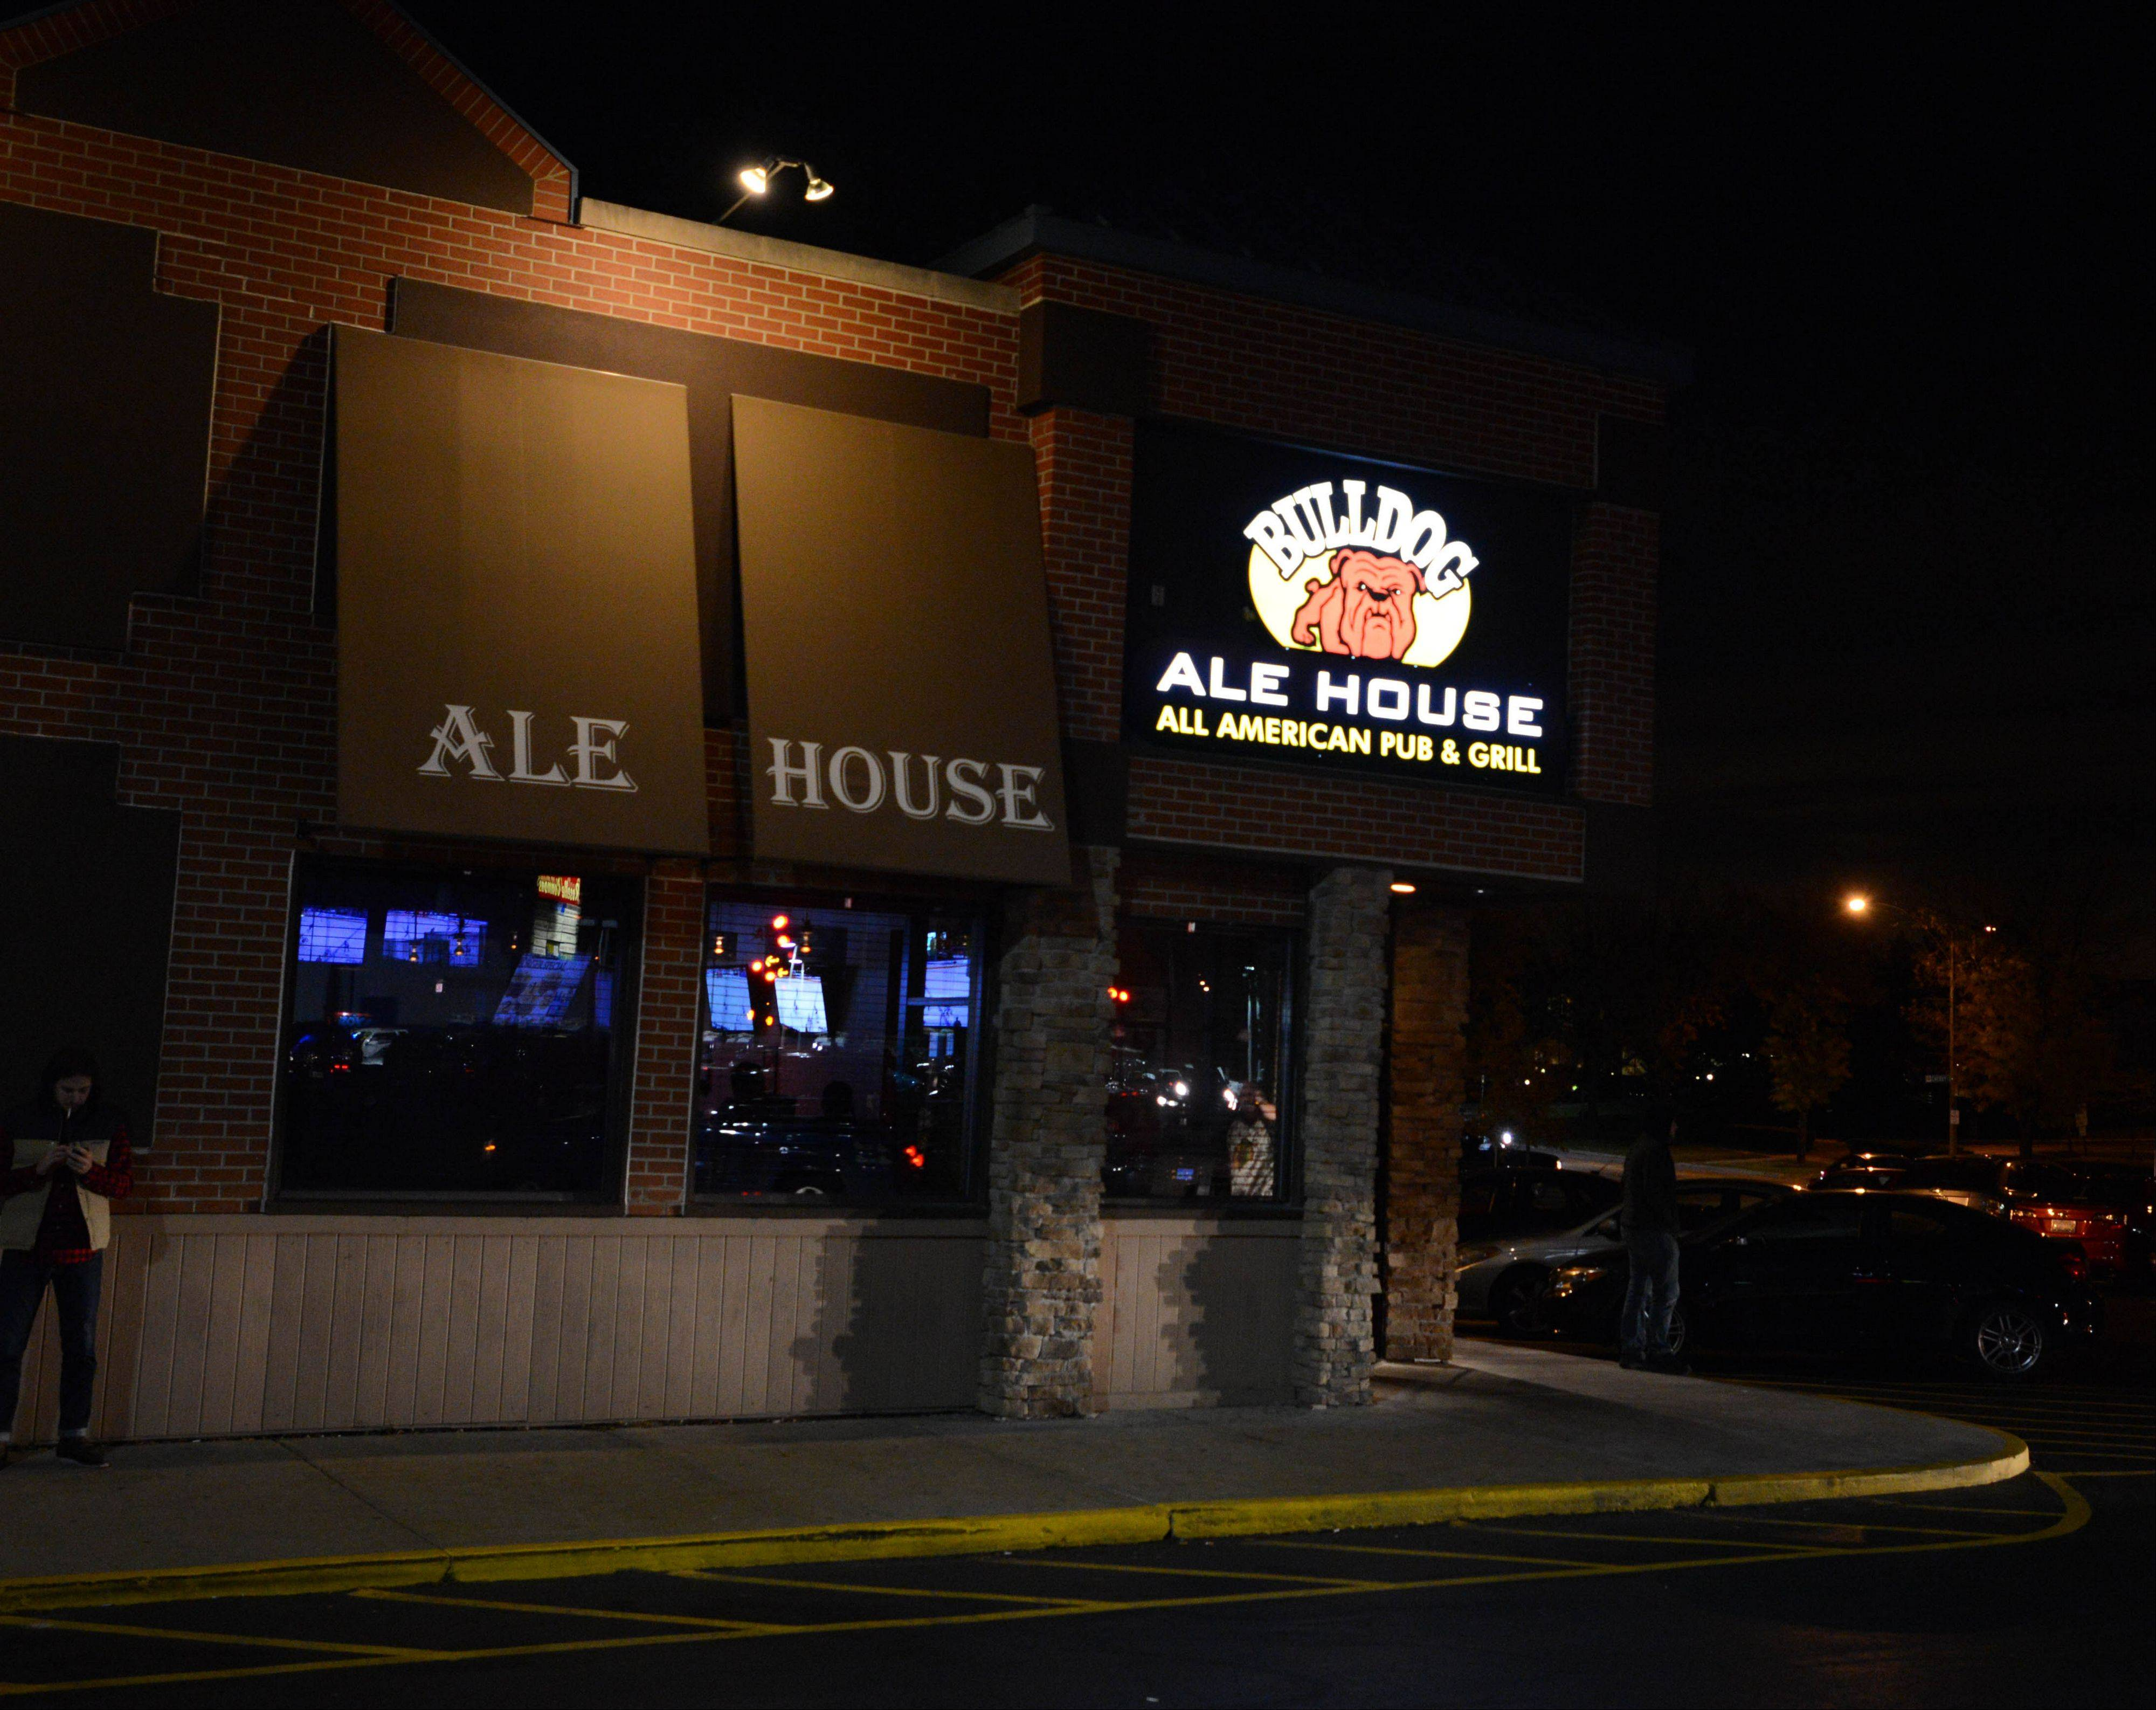 Bulldog Ale House in Roselle caters to a mix of beer lovers, sports fans and families.